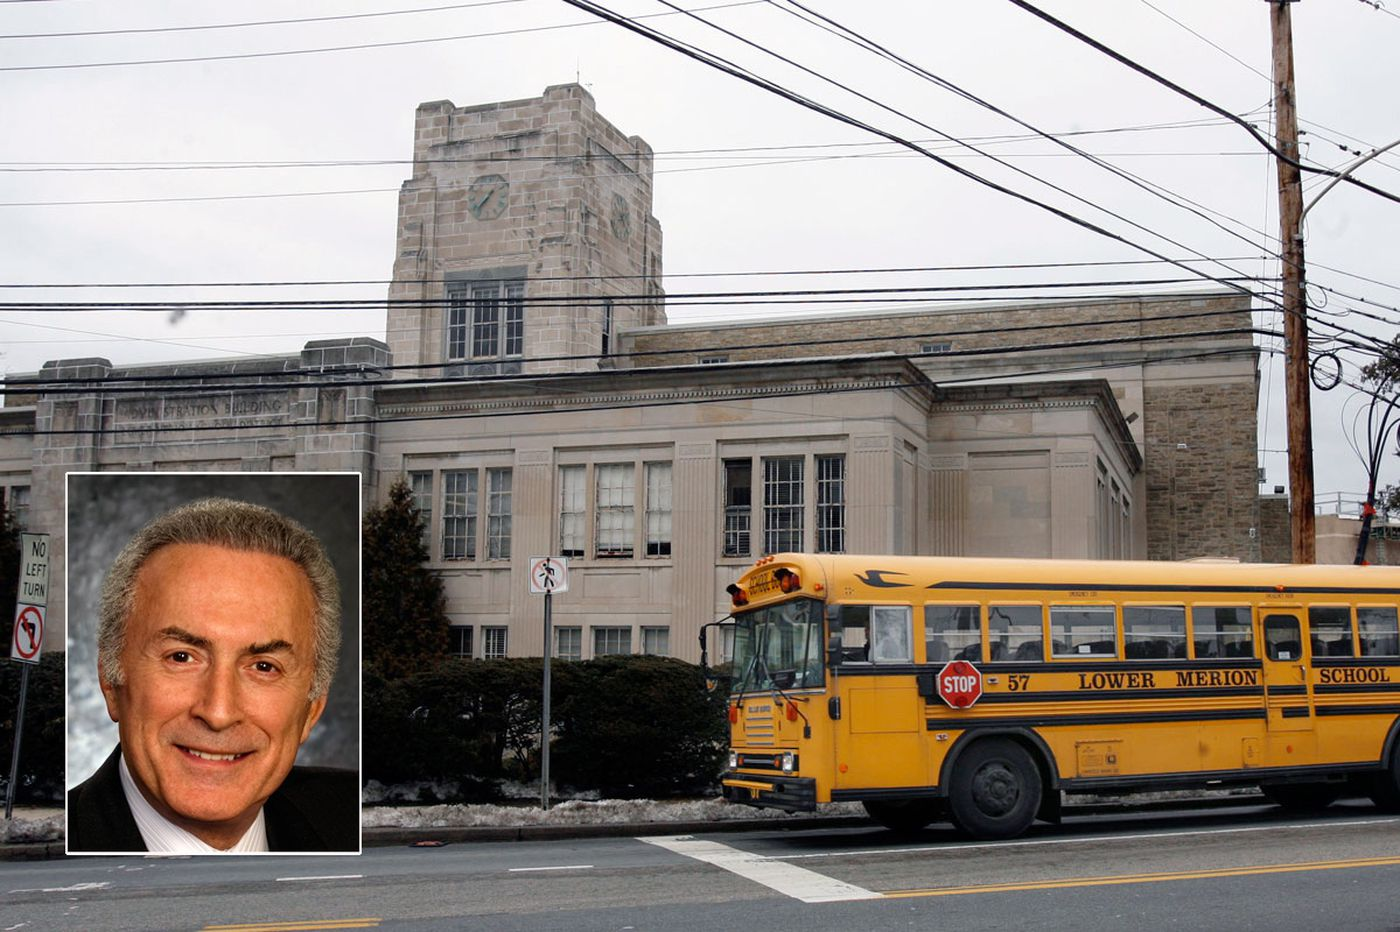 Lower Merion school tax hike brought down by aviation lawyer